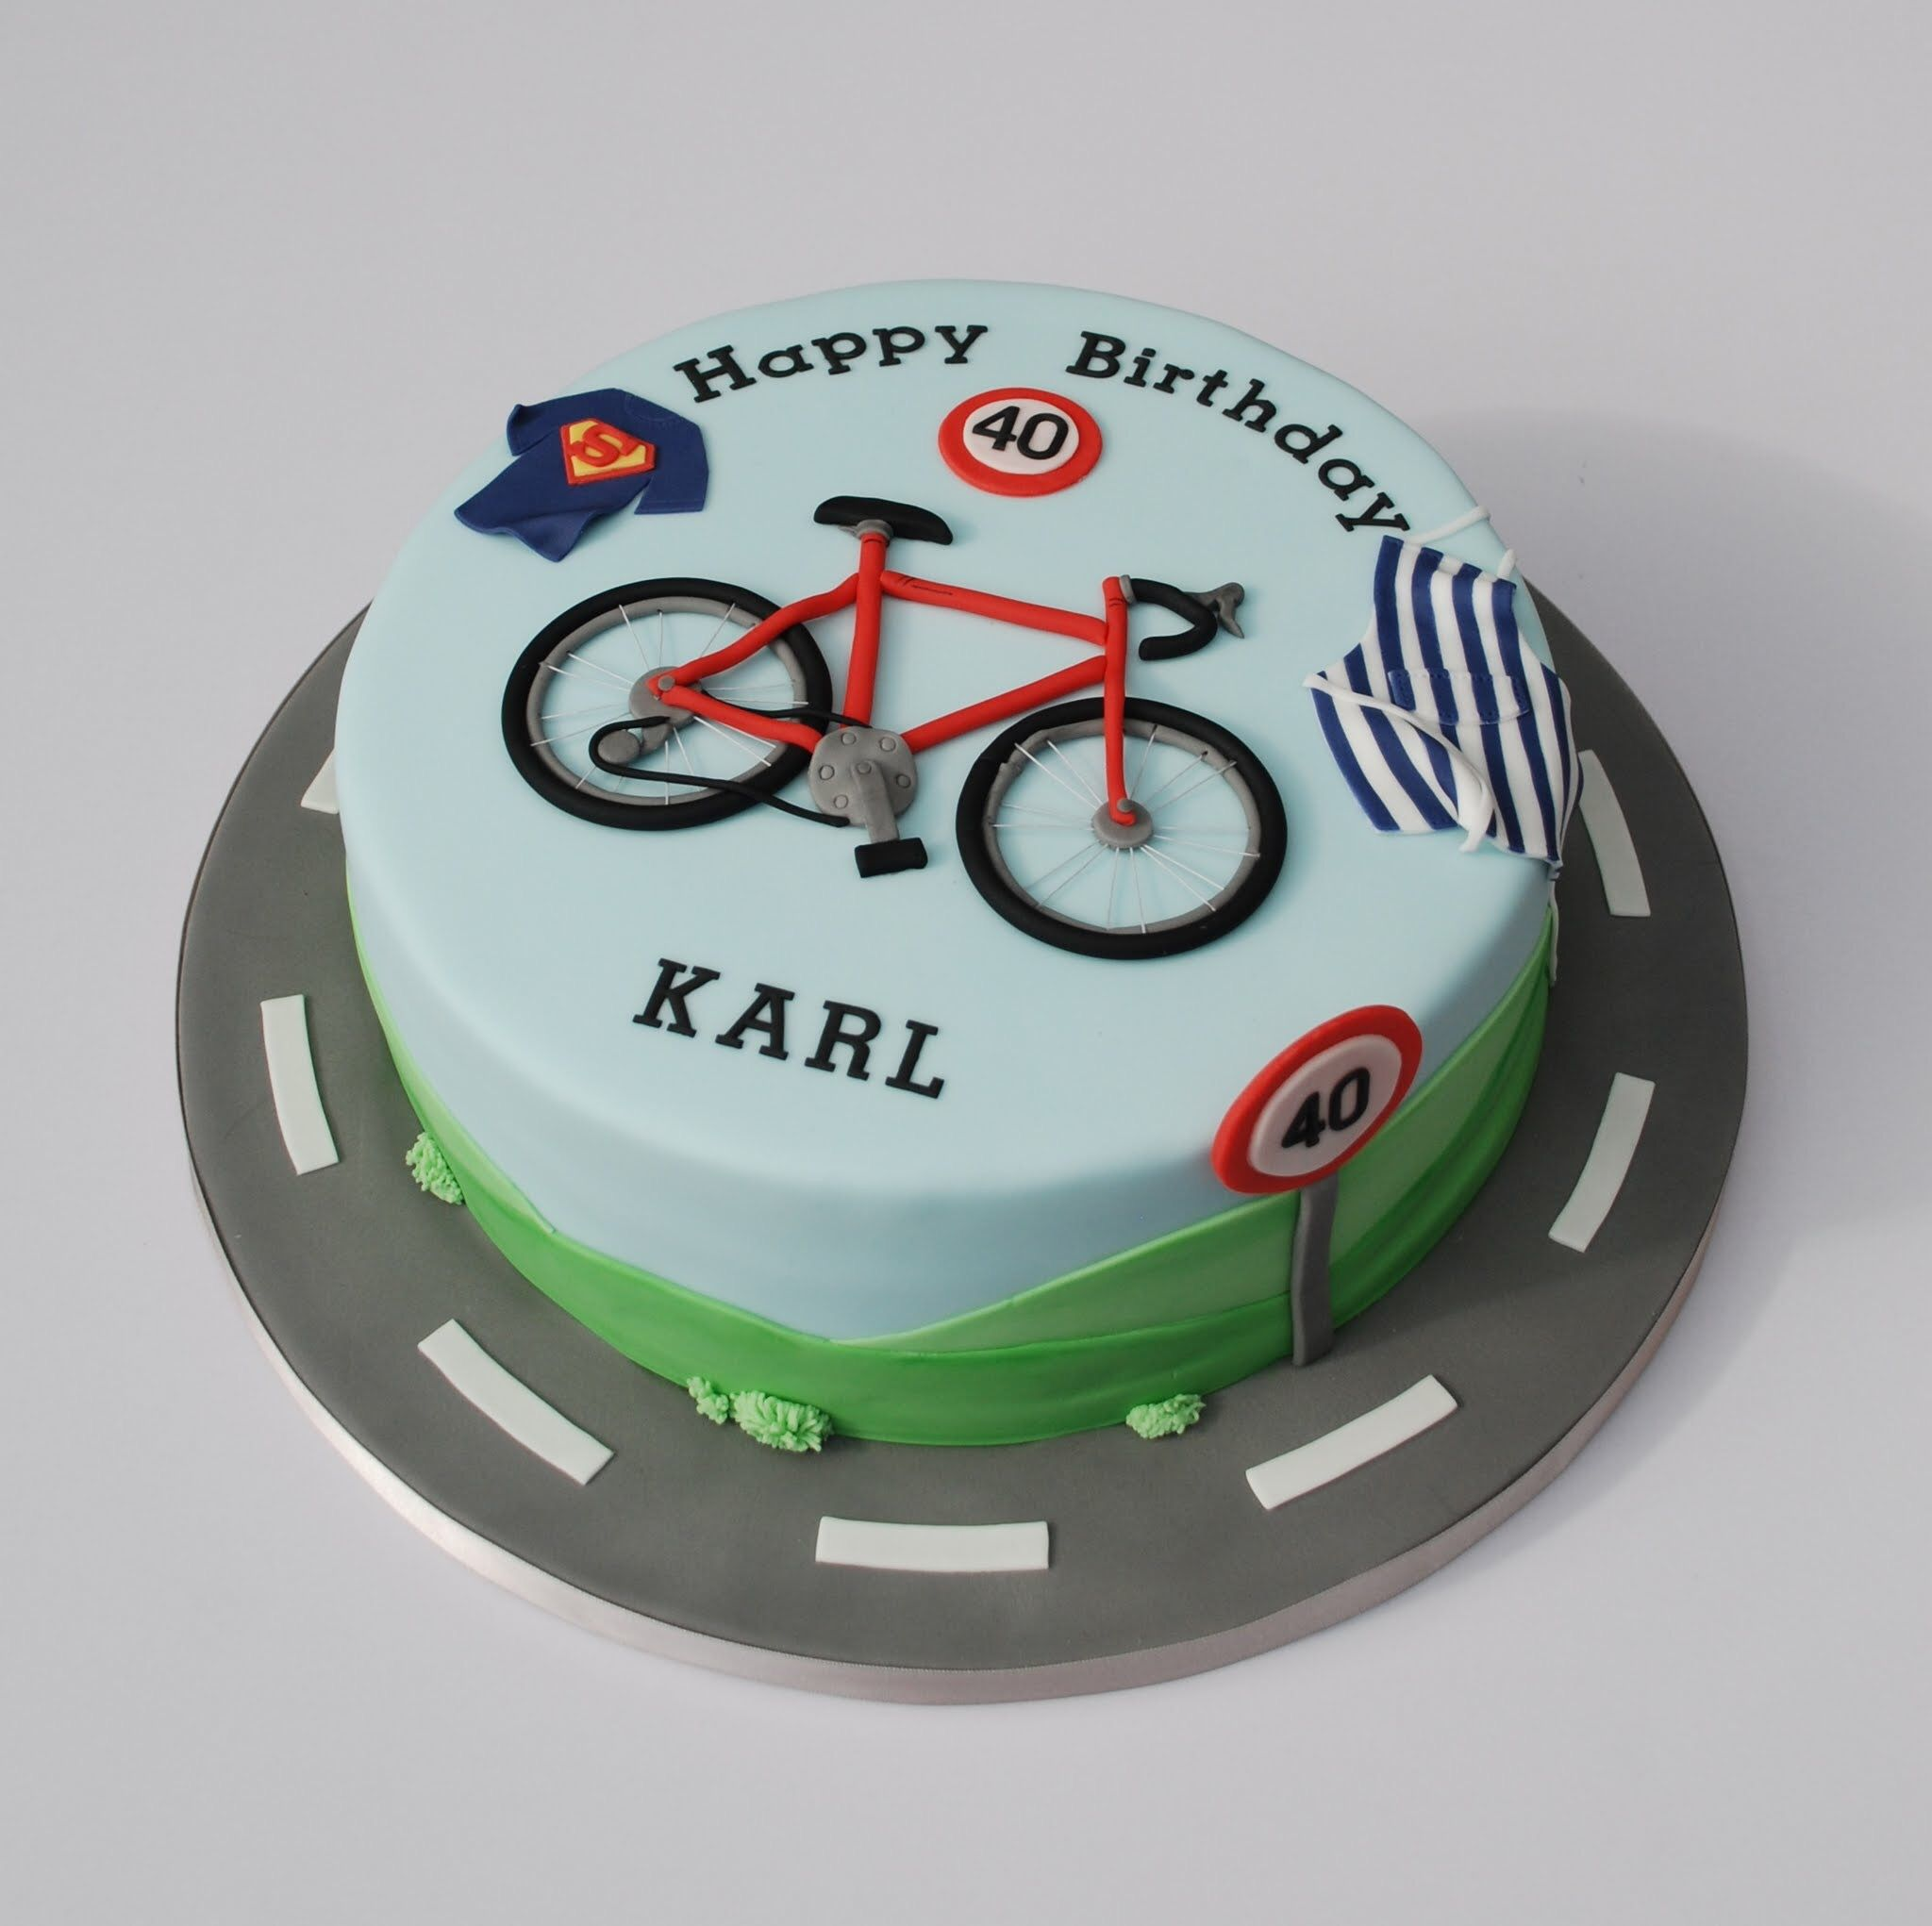 Birthday Cake For A Cycling Baking And Superman Fan